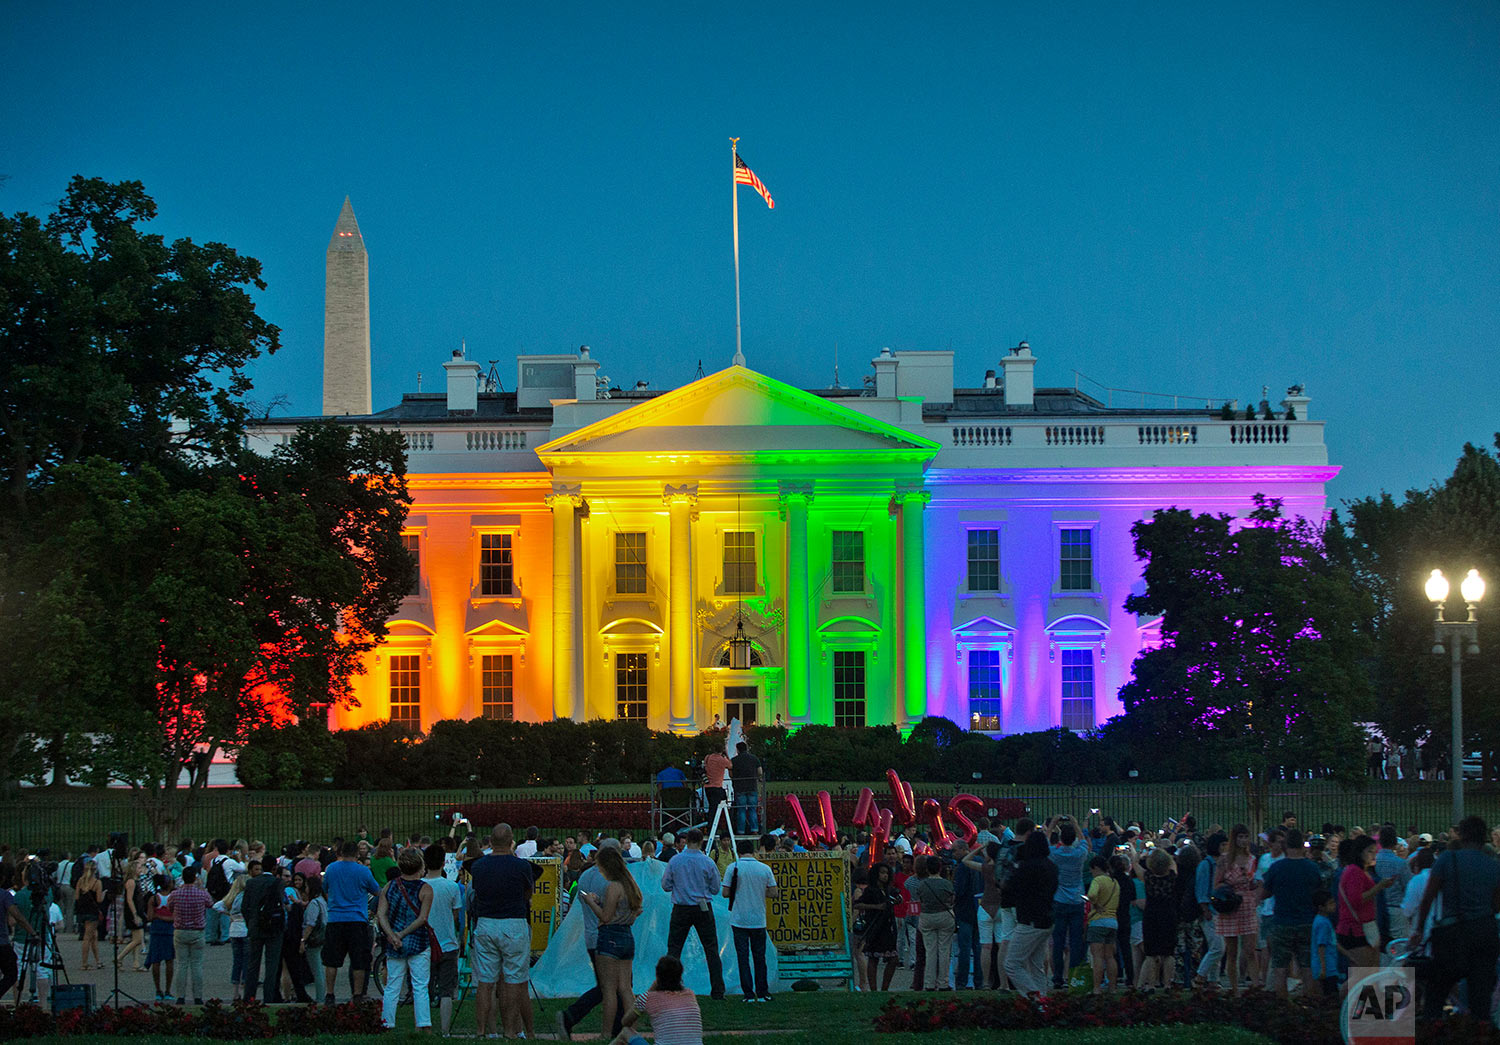 """In this Friday, June 26, 2015 file photo, people gather in Lafayette Park to see the White House illuminated with rainbow colors in commemoration of the Supreme Court's ruling to legalize same-sex marriage in Washington. President Barack Obama, who was inside, said a few days later, """"To see people gathered in the evening outside on a beautiful summer night, and to feel whole and to feel accepted, and to feel that they had a right to love _ that was pretty cool."""" (AP Photo/Pablo Martinez Monsivais,)"""